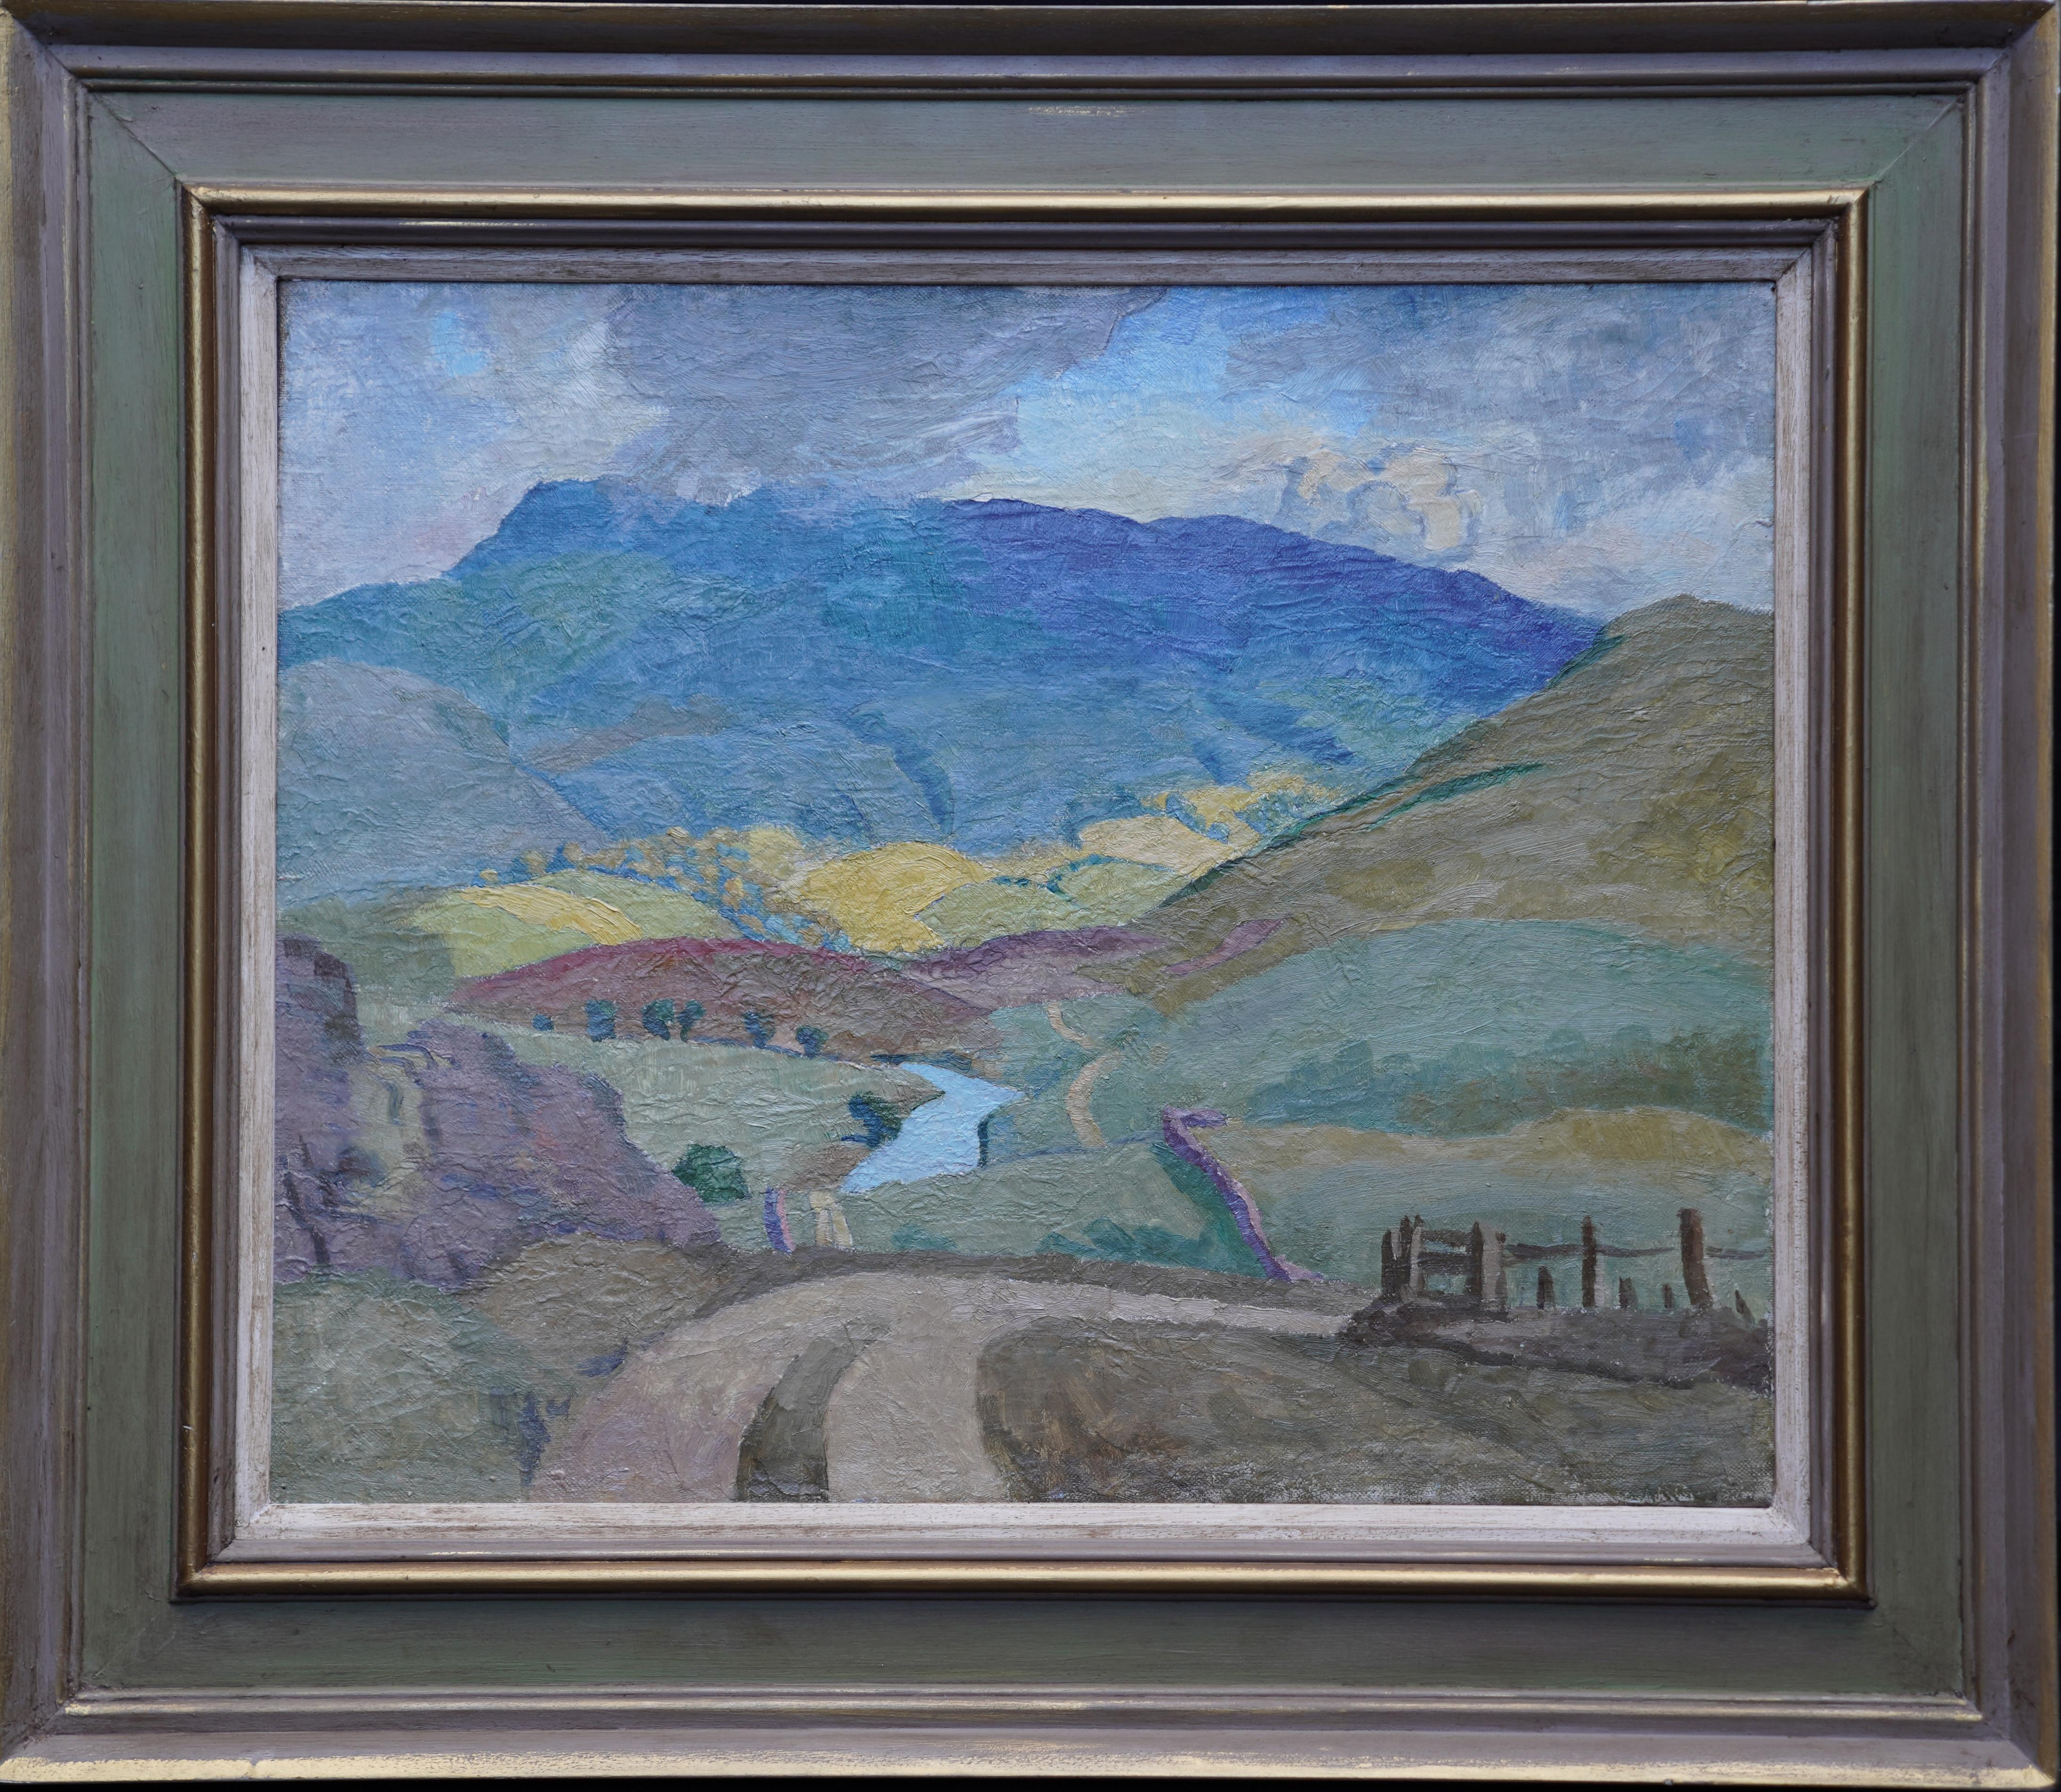 Landscape with River - British Post Impressionist 1950's art oil painting Wales